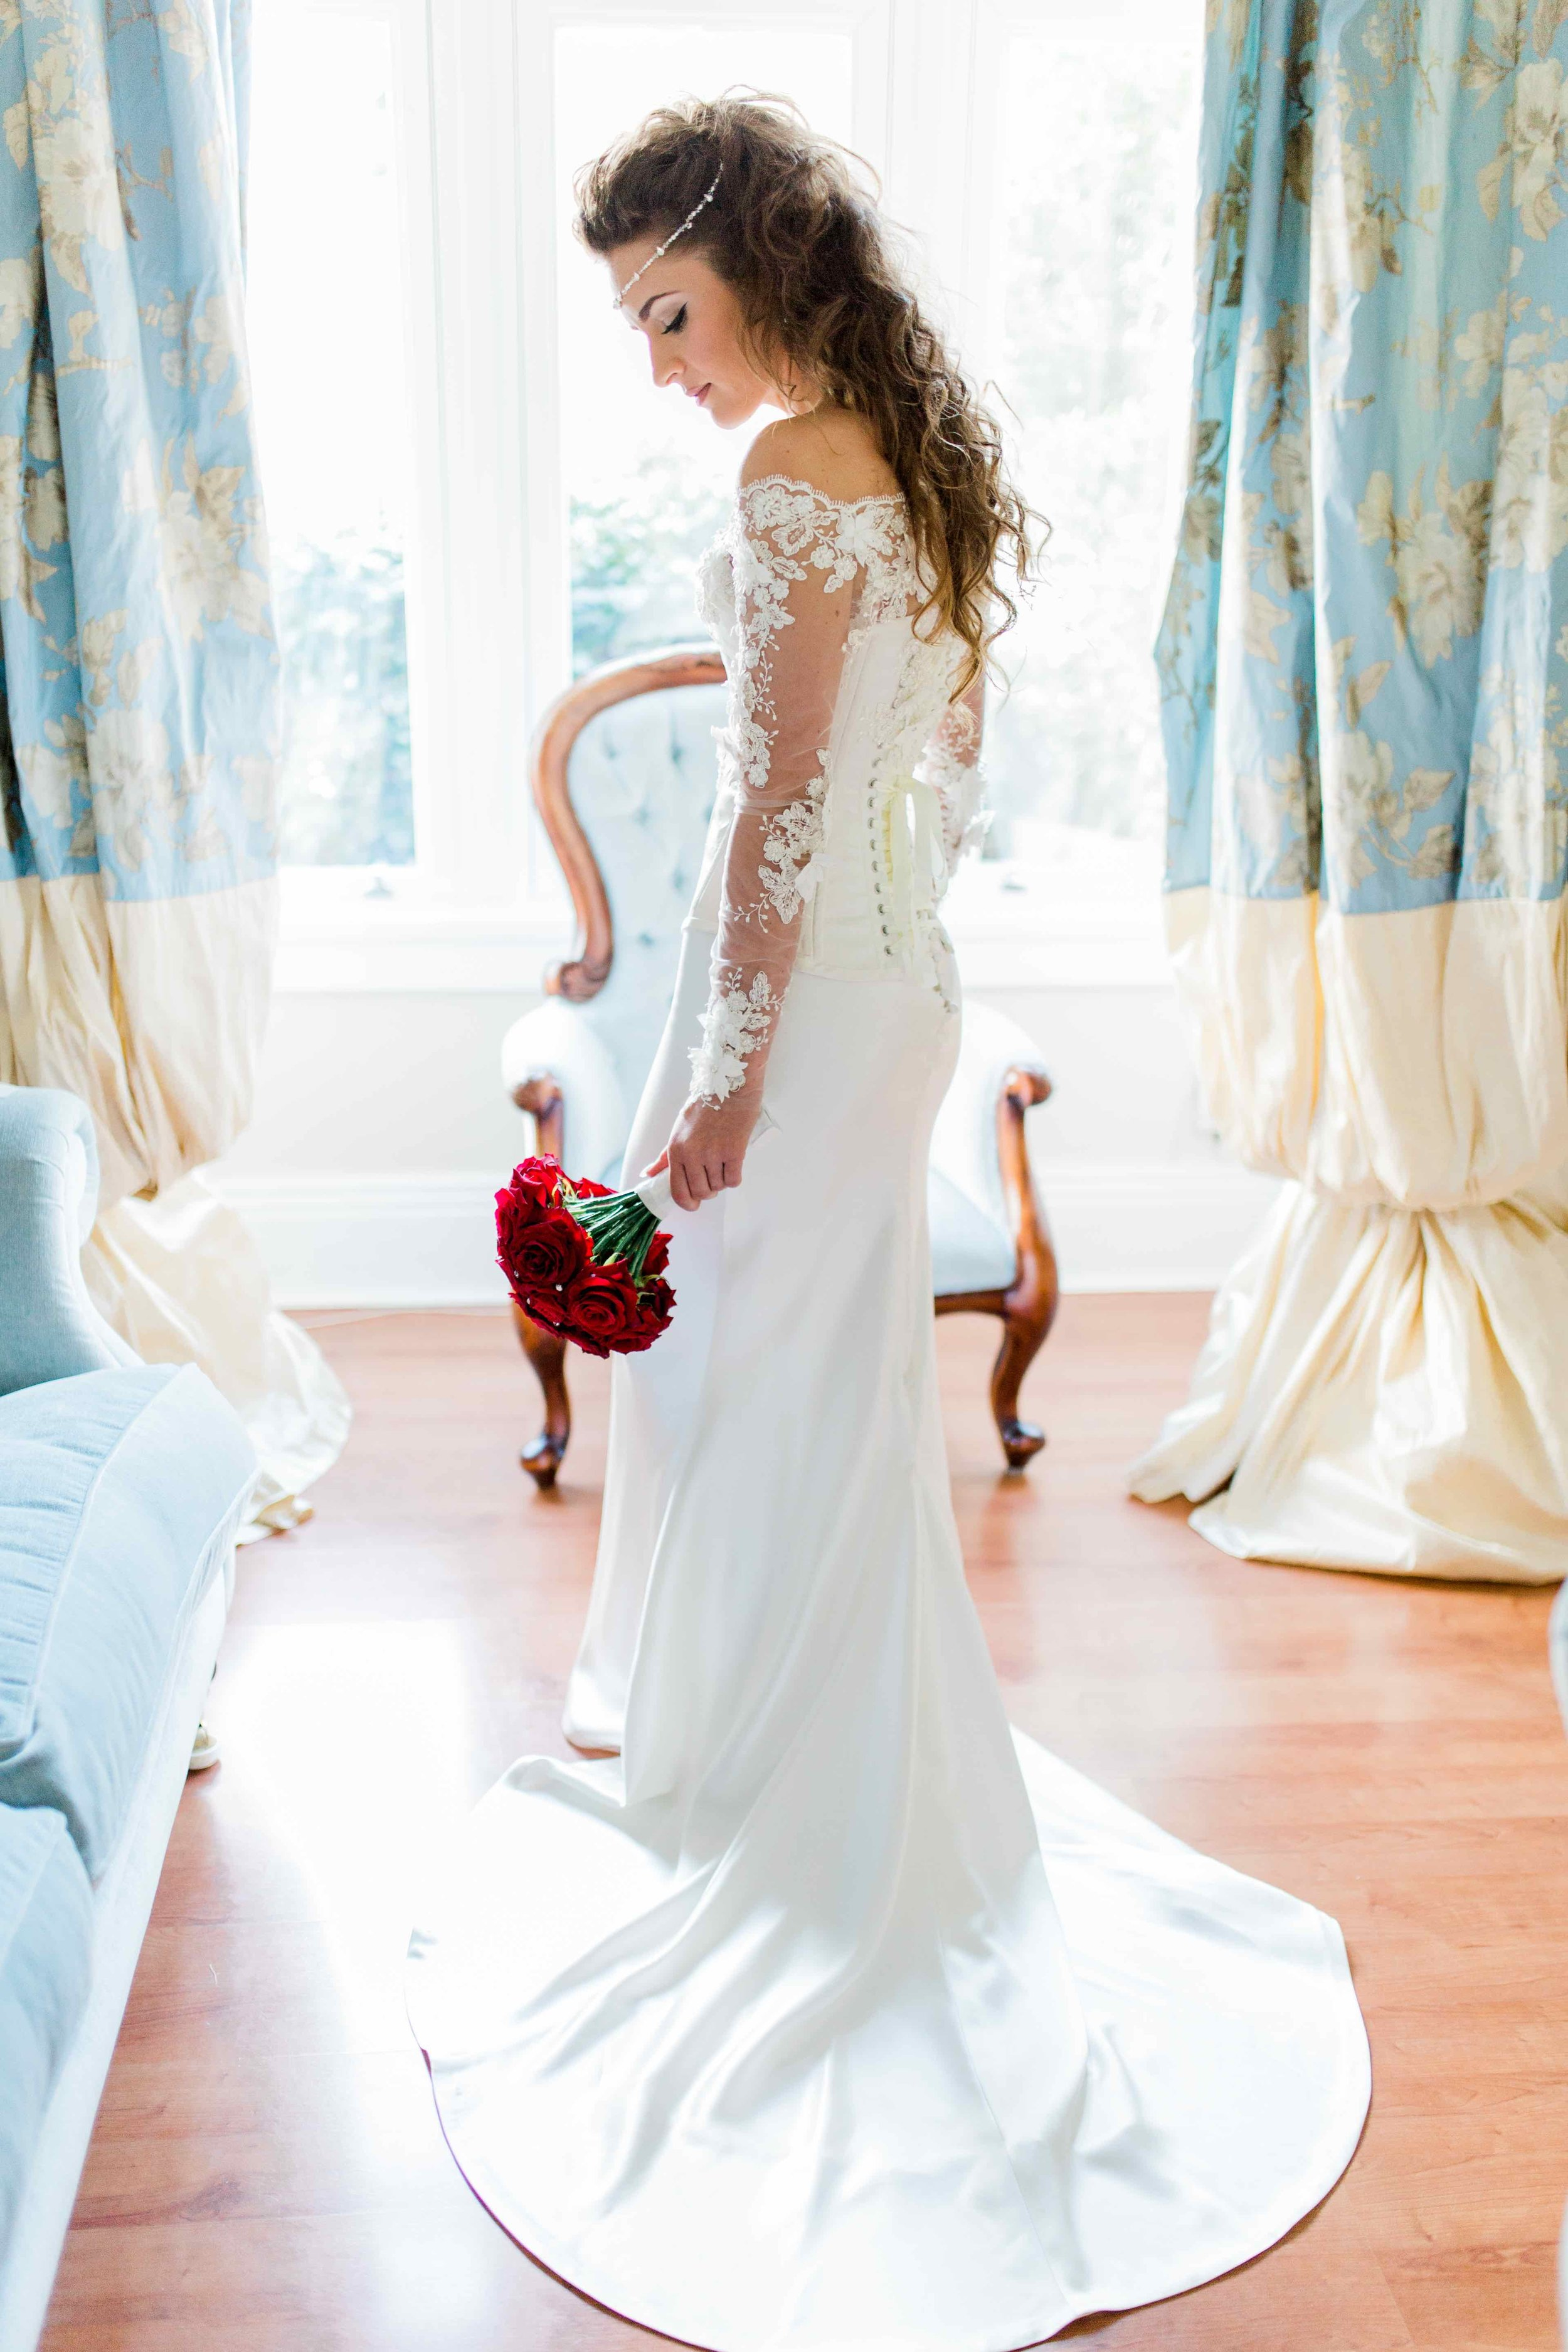 Bespoke creations to fit your perfect day.